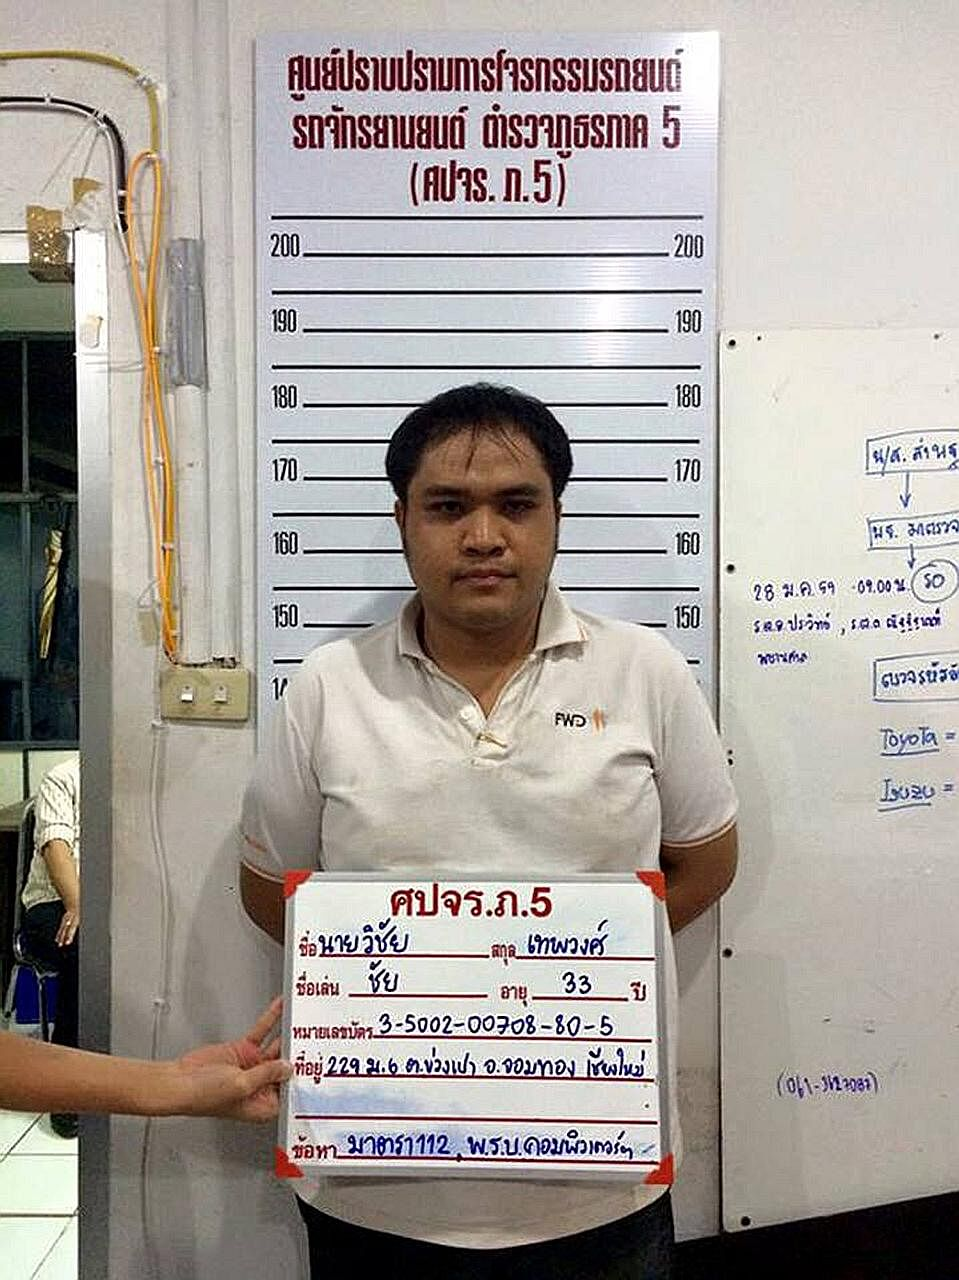 Vichai Thepwong was initially sentenced to 70 years, but the jail term was halved after he pleaded guilty. His conviction beat a 30-year sentence handed down in 2015.